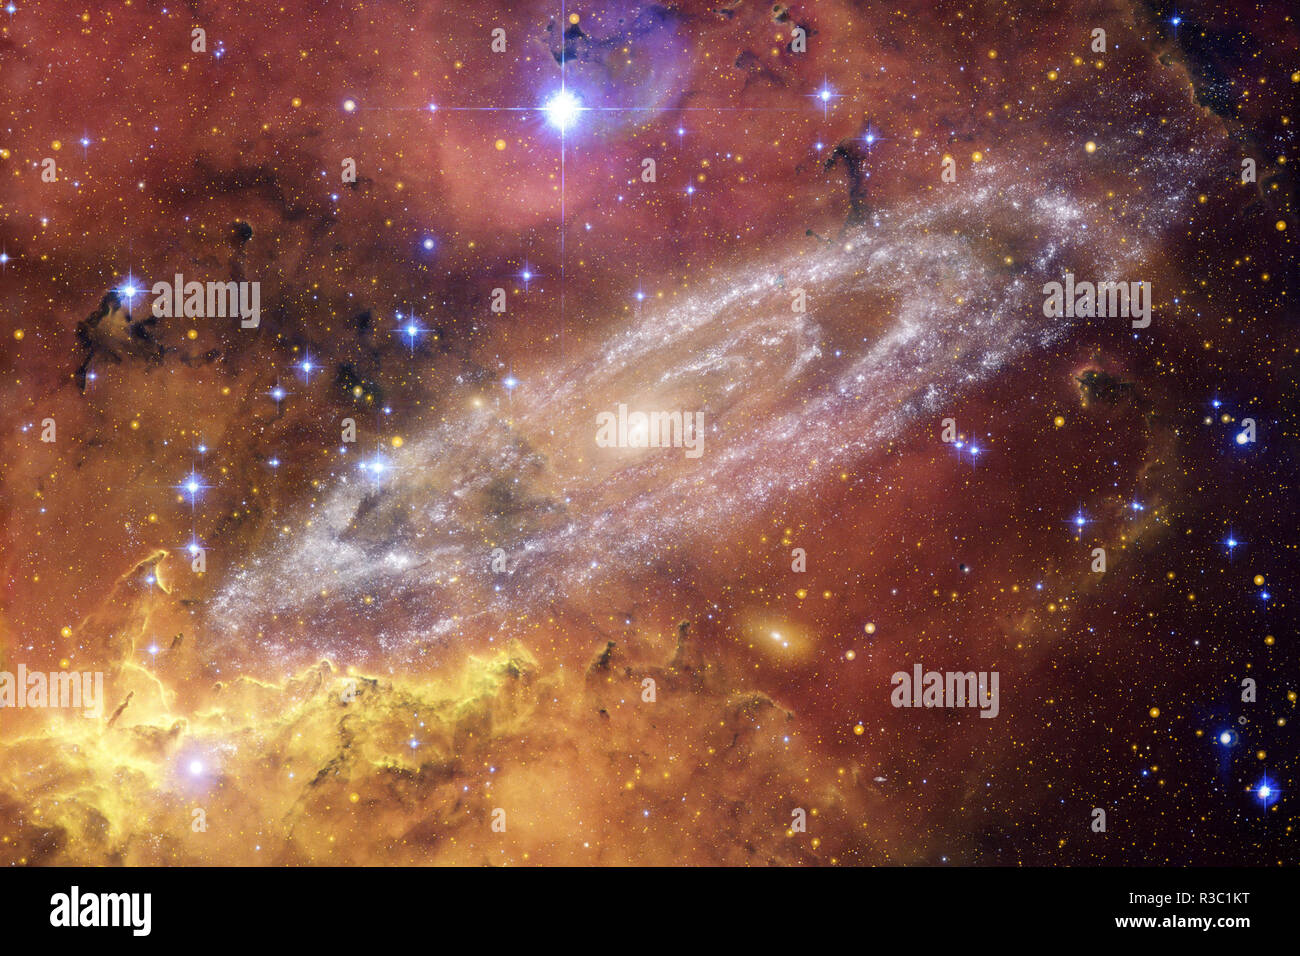 Beauty Deep Space Science Fiction Fantasy In High